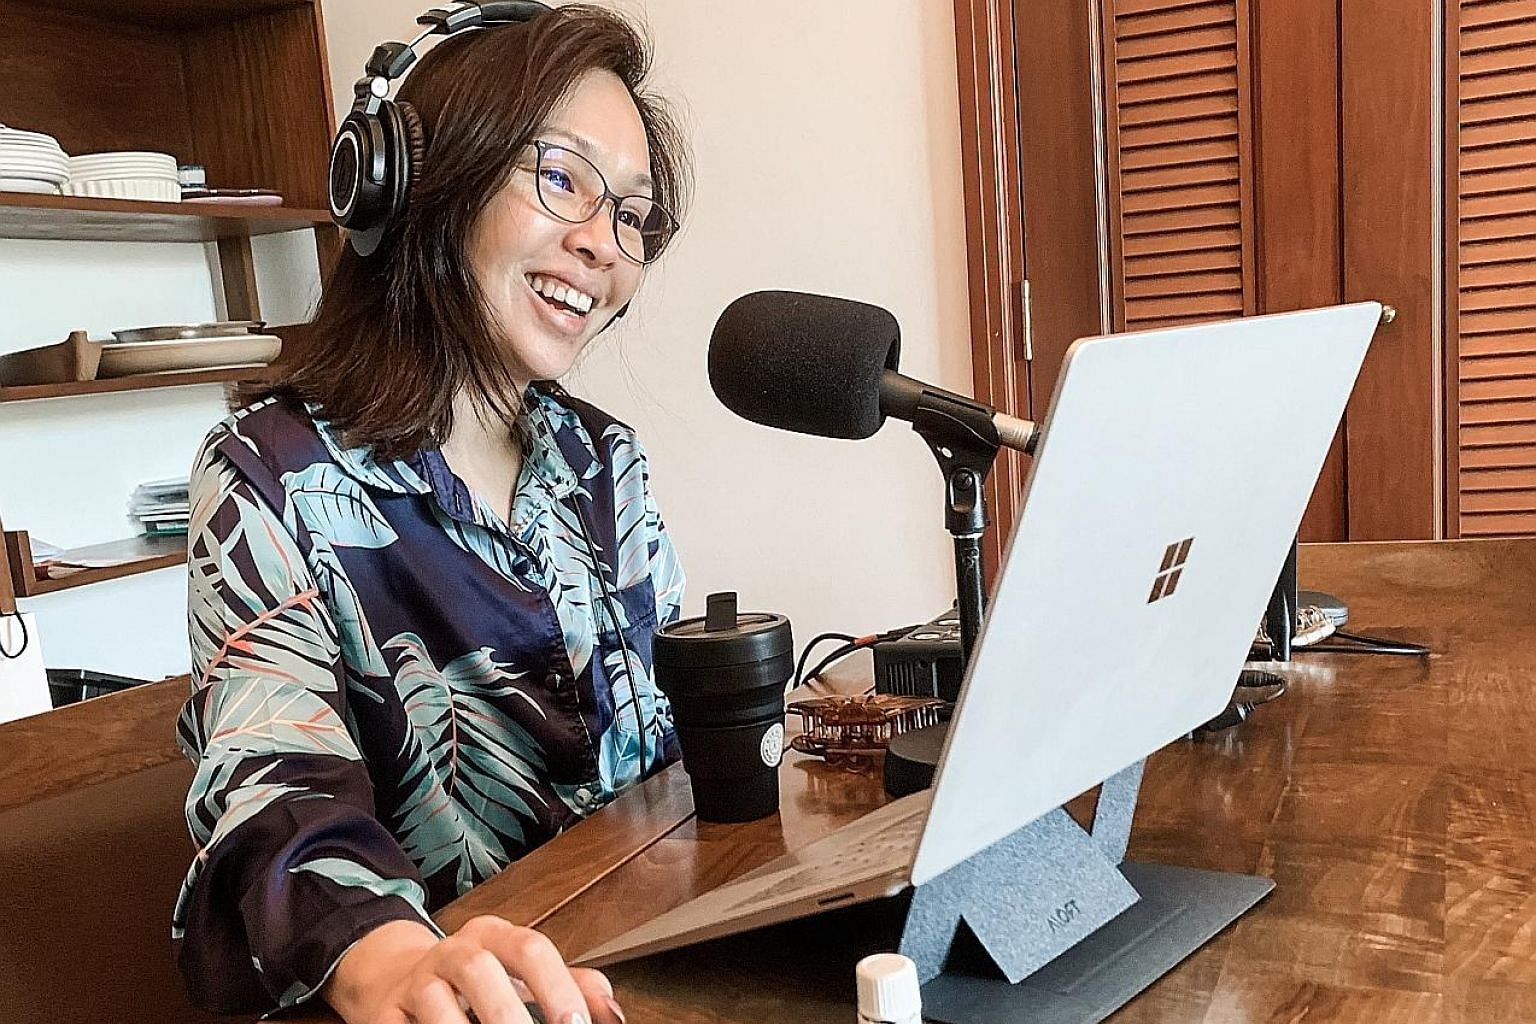 Radio presenter Maddy Barber, who has to stay home for two weeks, has been broadcasting live from her home.